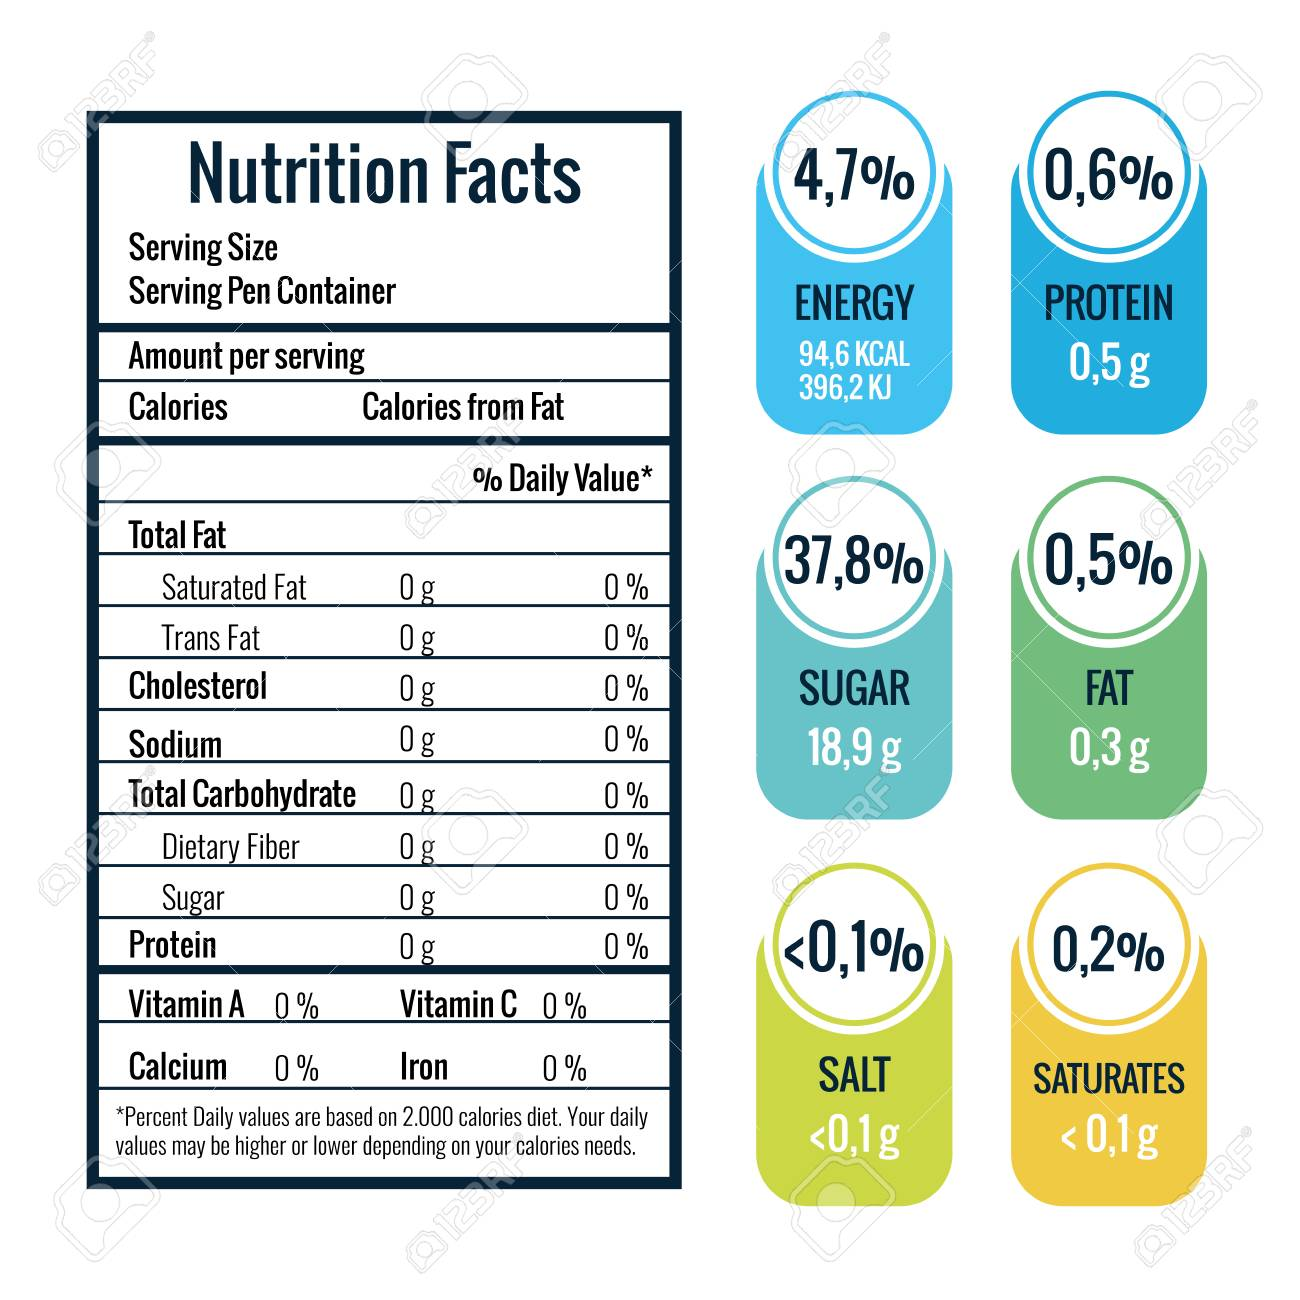 nutrition facts infographic data vector illustration design - 116297557